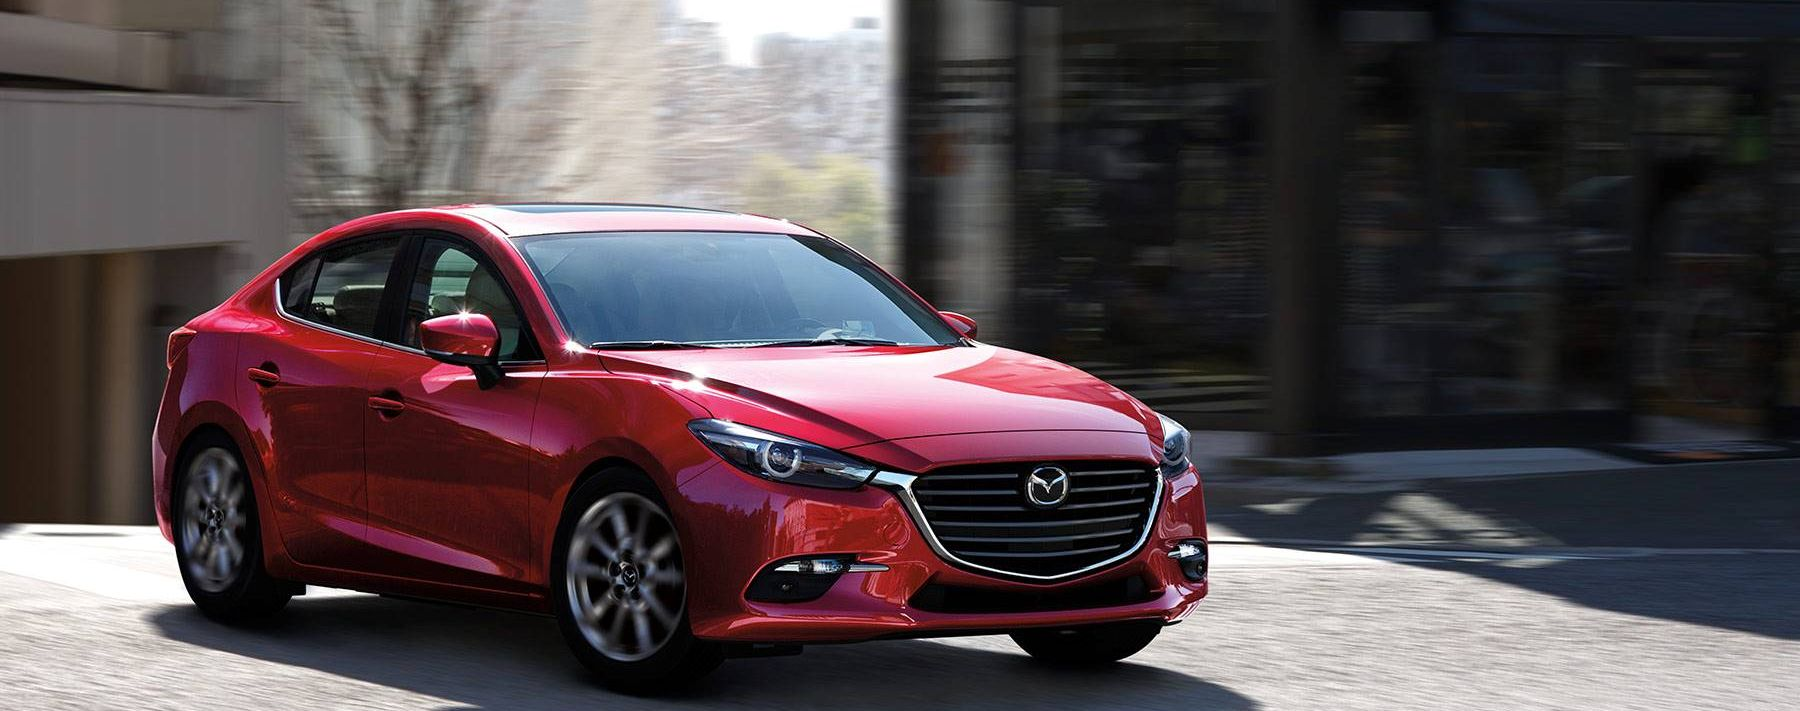 Cars For Sale In Columbia Sc >> Used Mazda Vehicles For Sale Near Columbia Sc Gerald